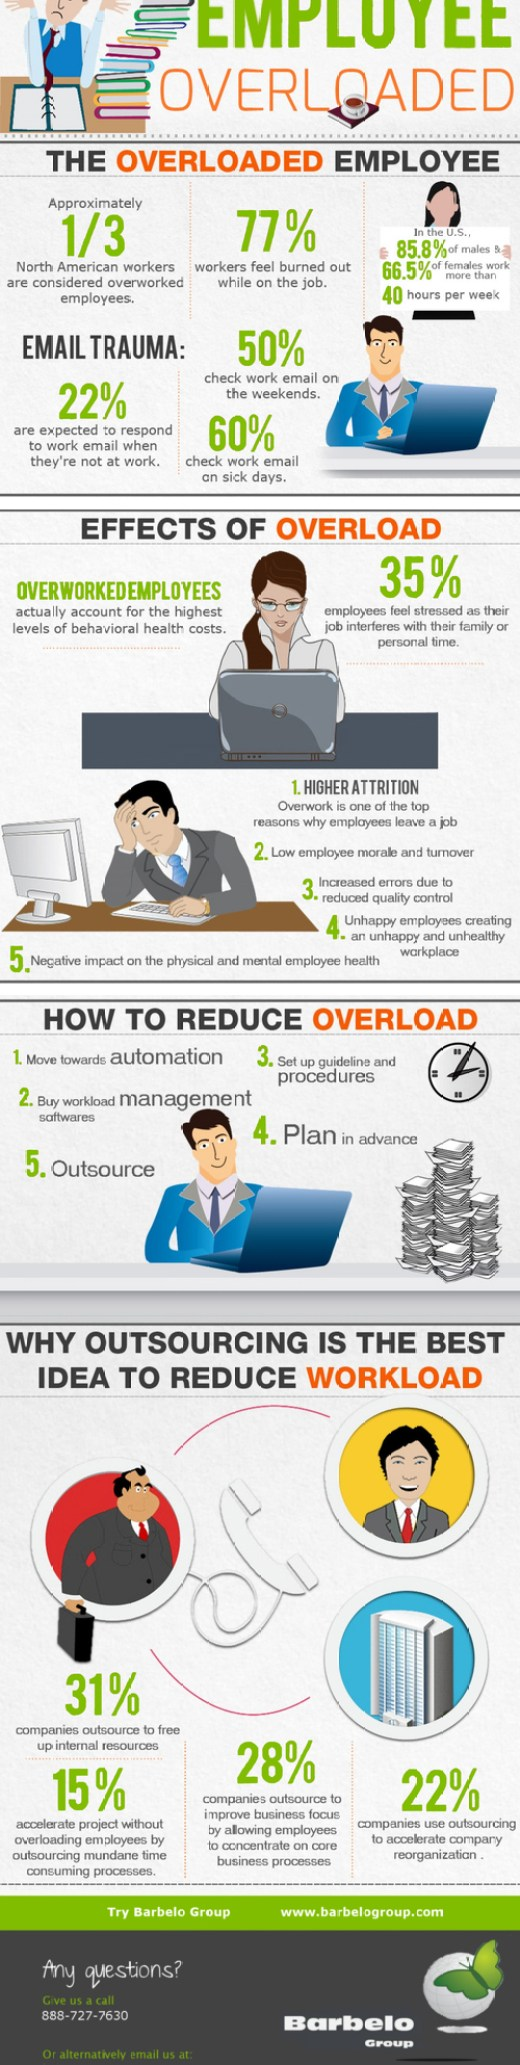 """""""Employee Overloaded"""" How Overworked Employees Can Impact Your Business' Bottom Line via @Barbelo_Group"""